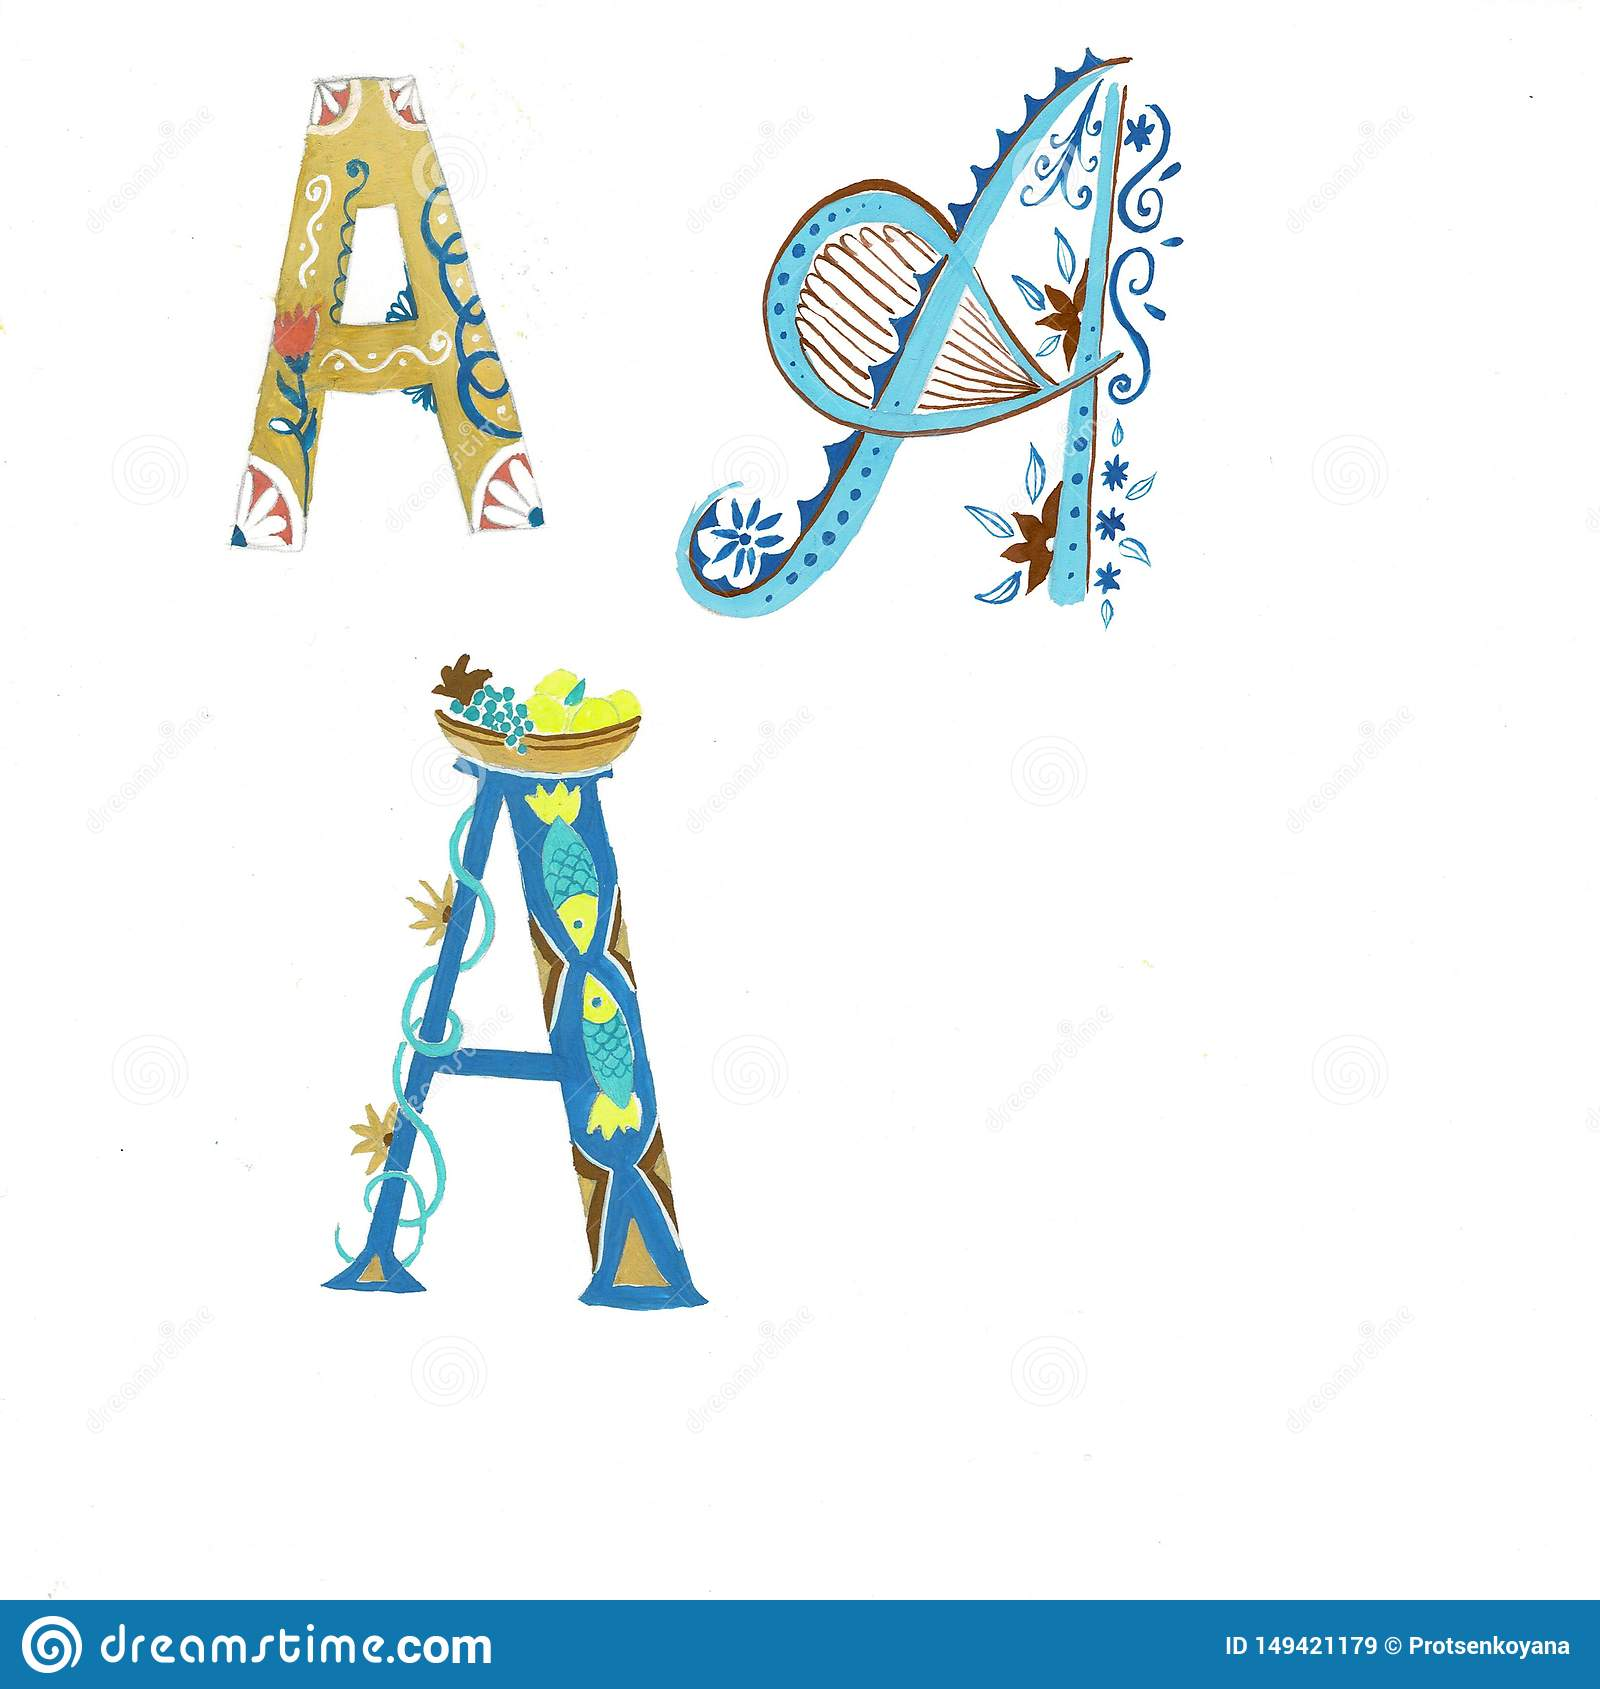 Gold floral watercolor alphabet art. Combination of gold A letter and flower wreath to create delicate designs for